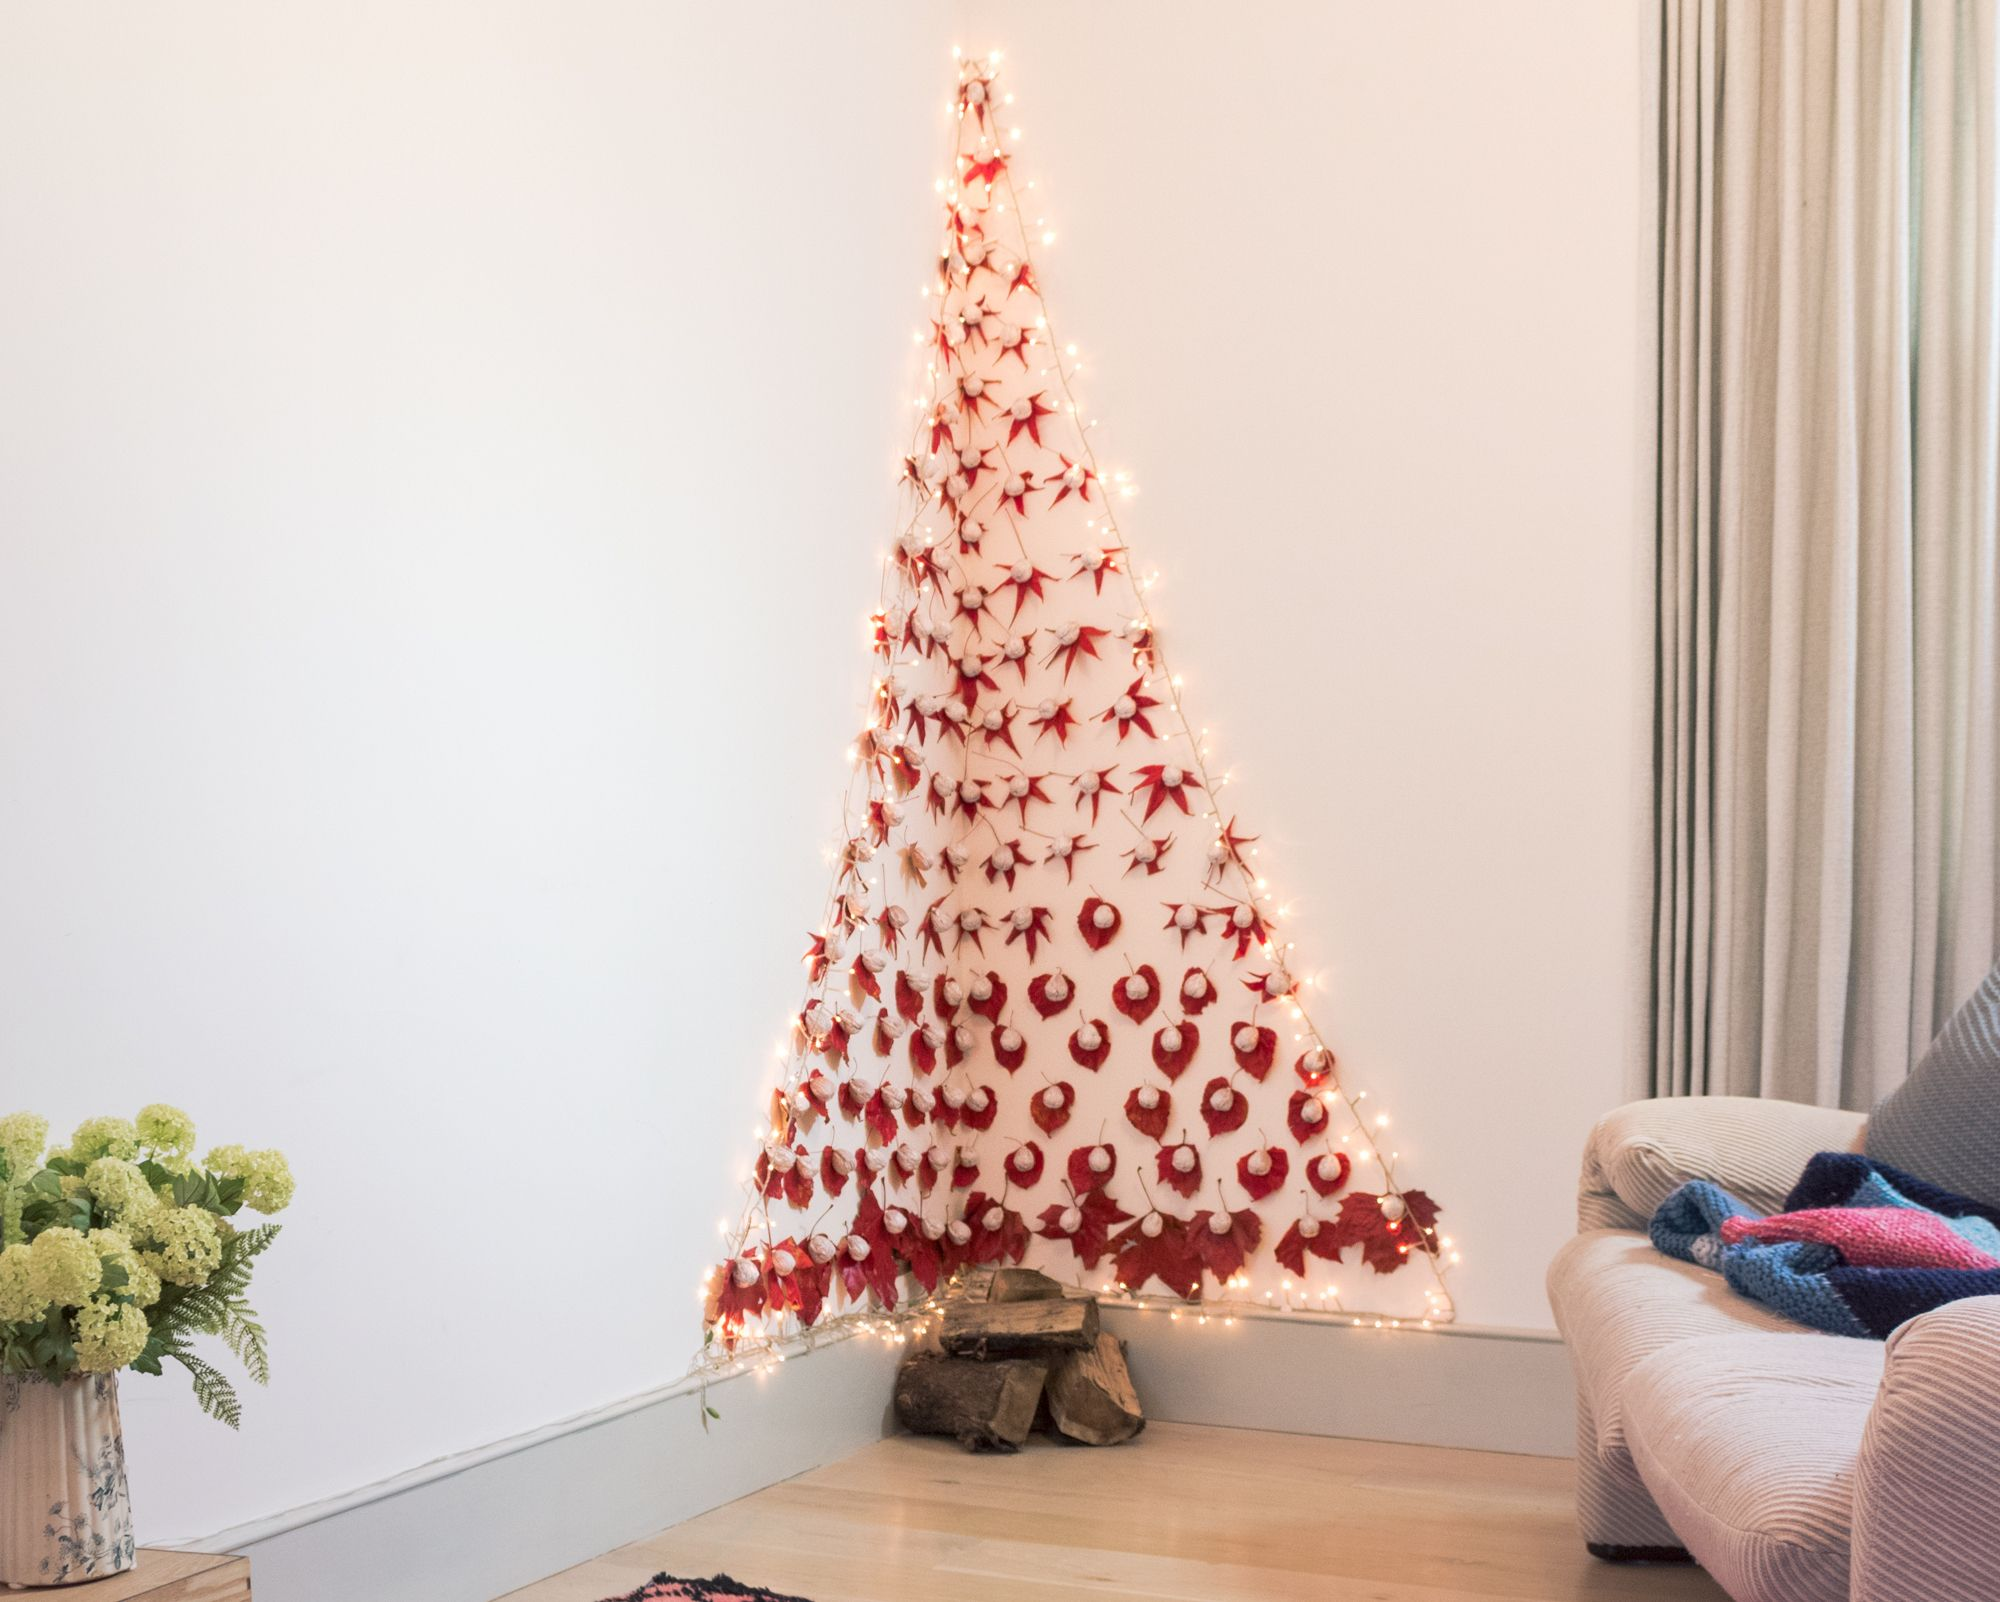 How To Make A Diy Christmas Tree Sugru